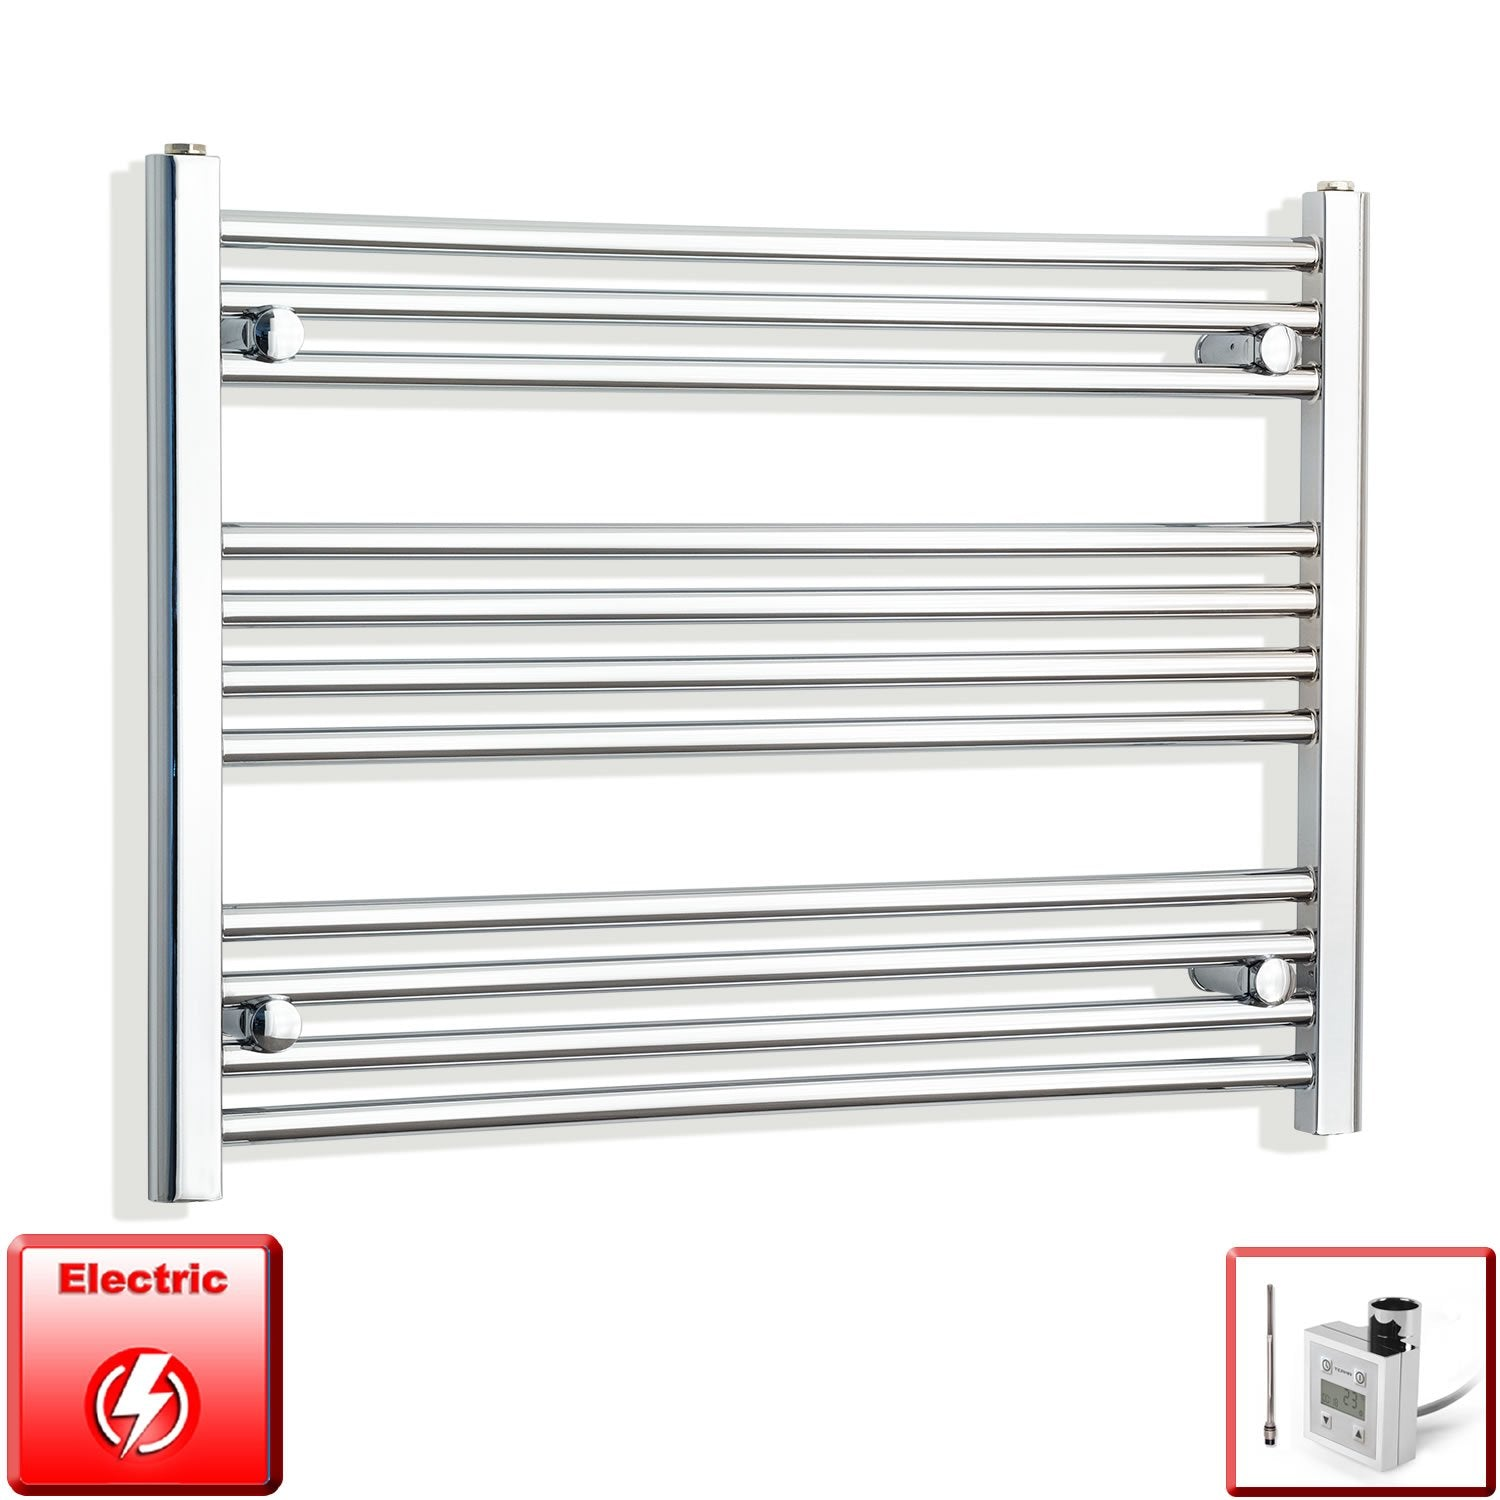 950mm Wide 600mm High Flat Chrome Pre-Filled Electric Heated Towel Rail Radiator HTR,KTX-3 Thermostatic Element